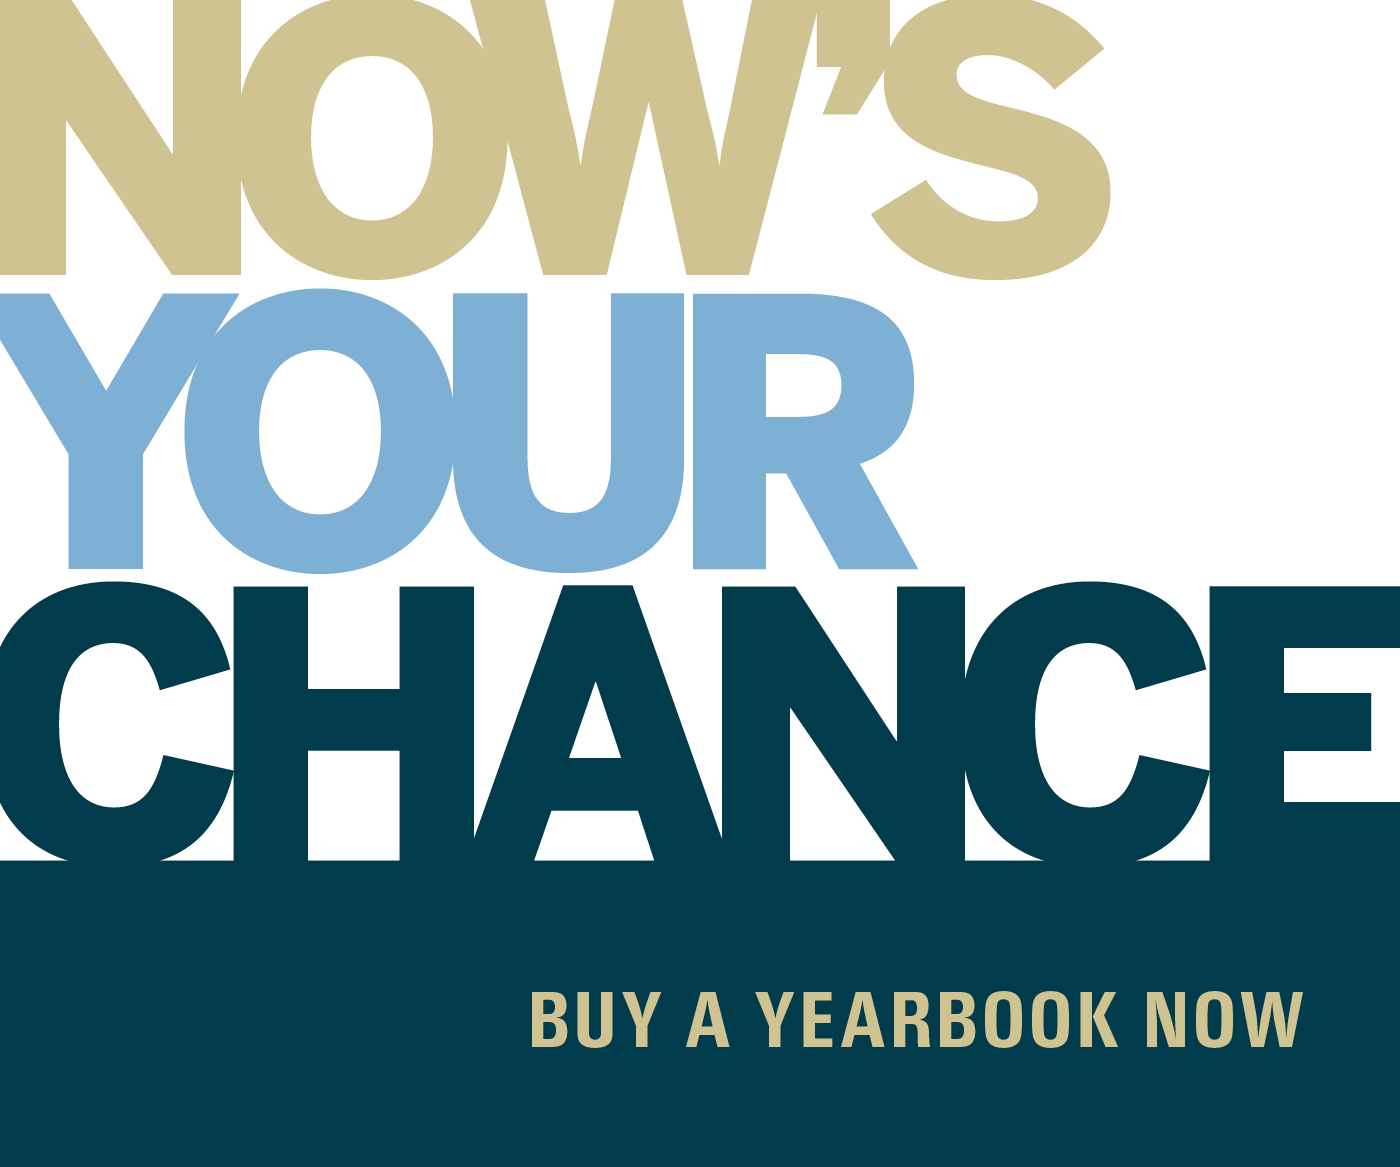 Order a yearbook!